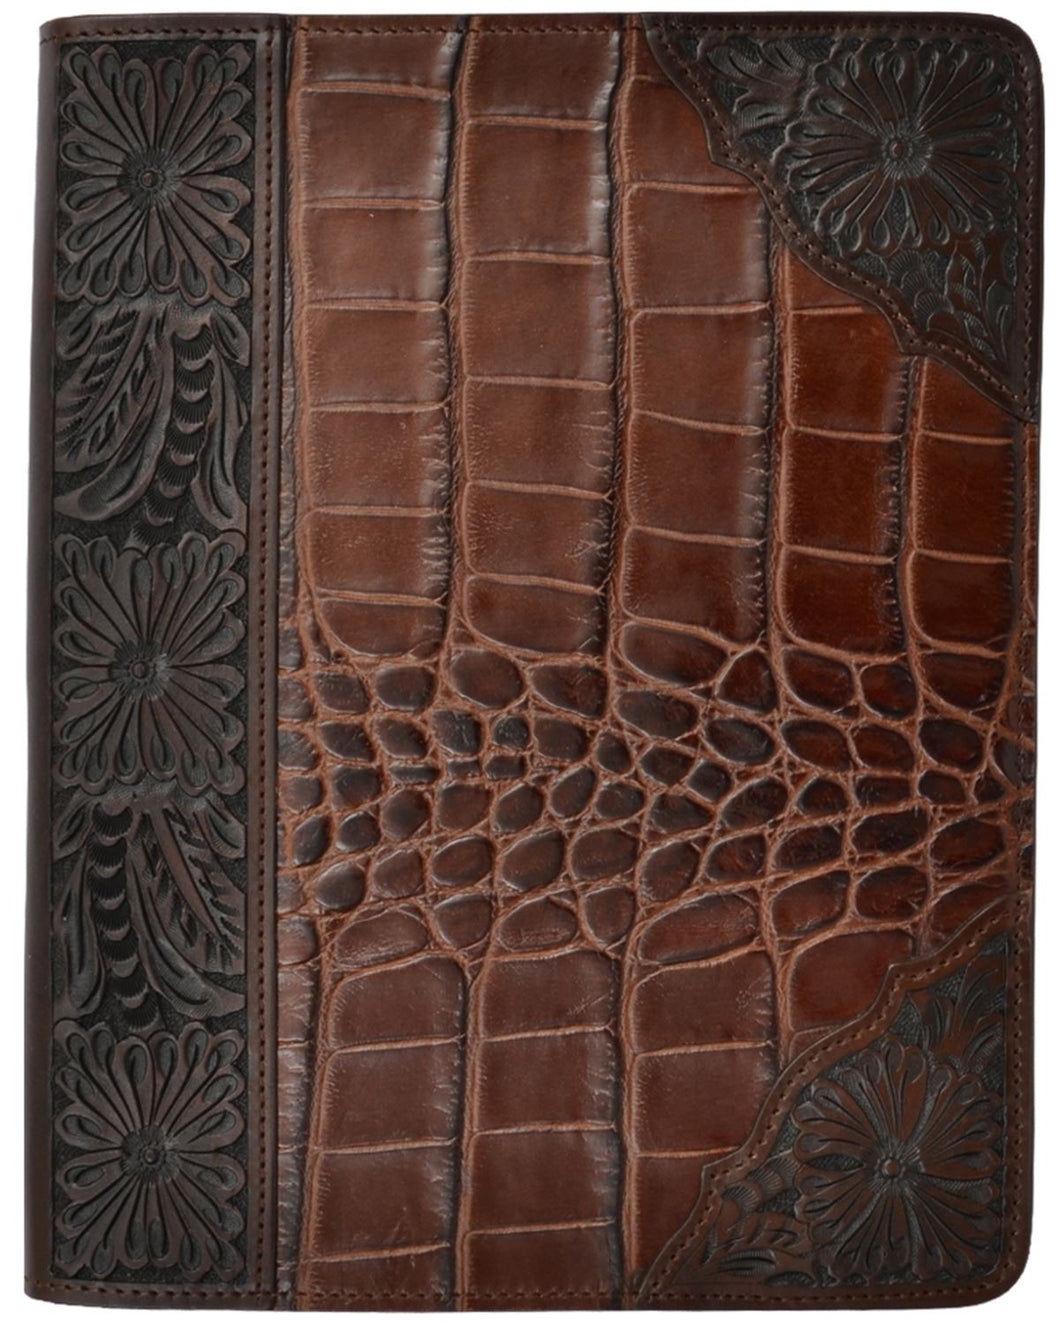 (3DB-G294) Western Brown Gator Print iPad® Air Cover